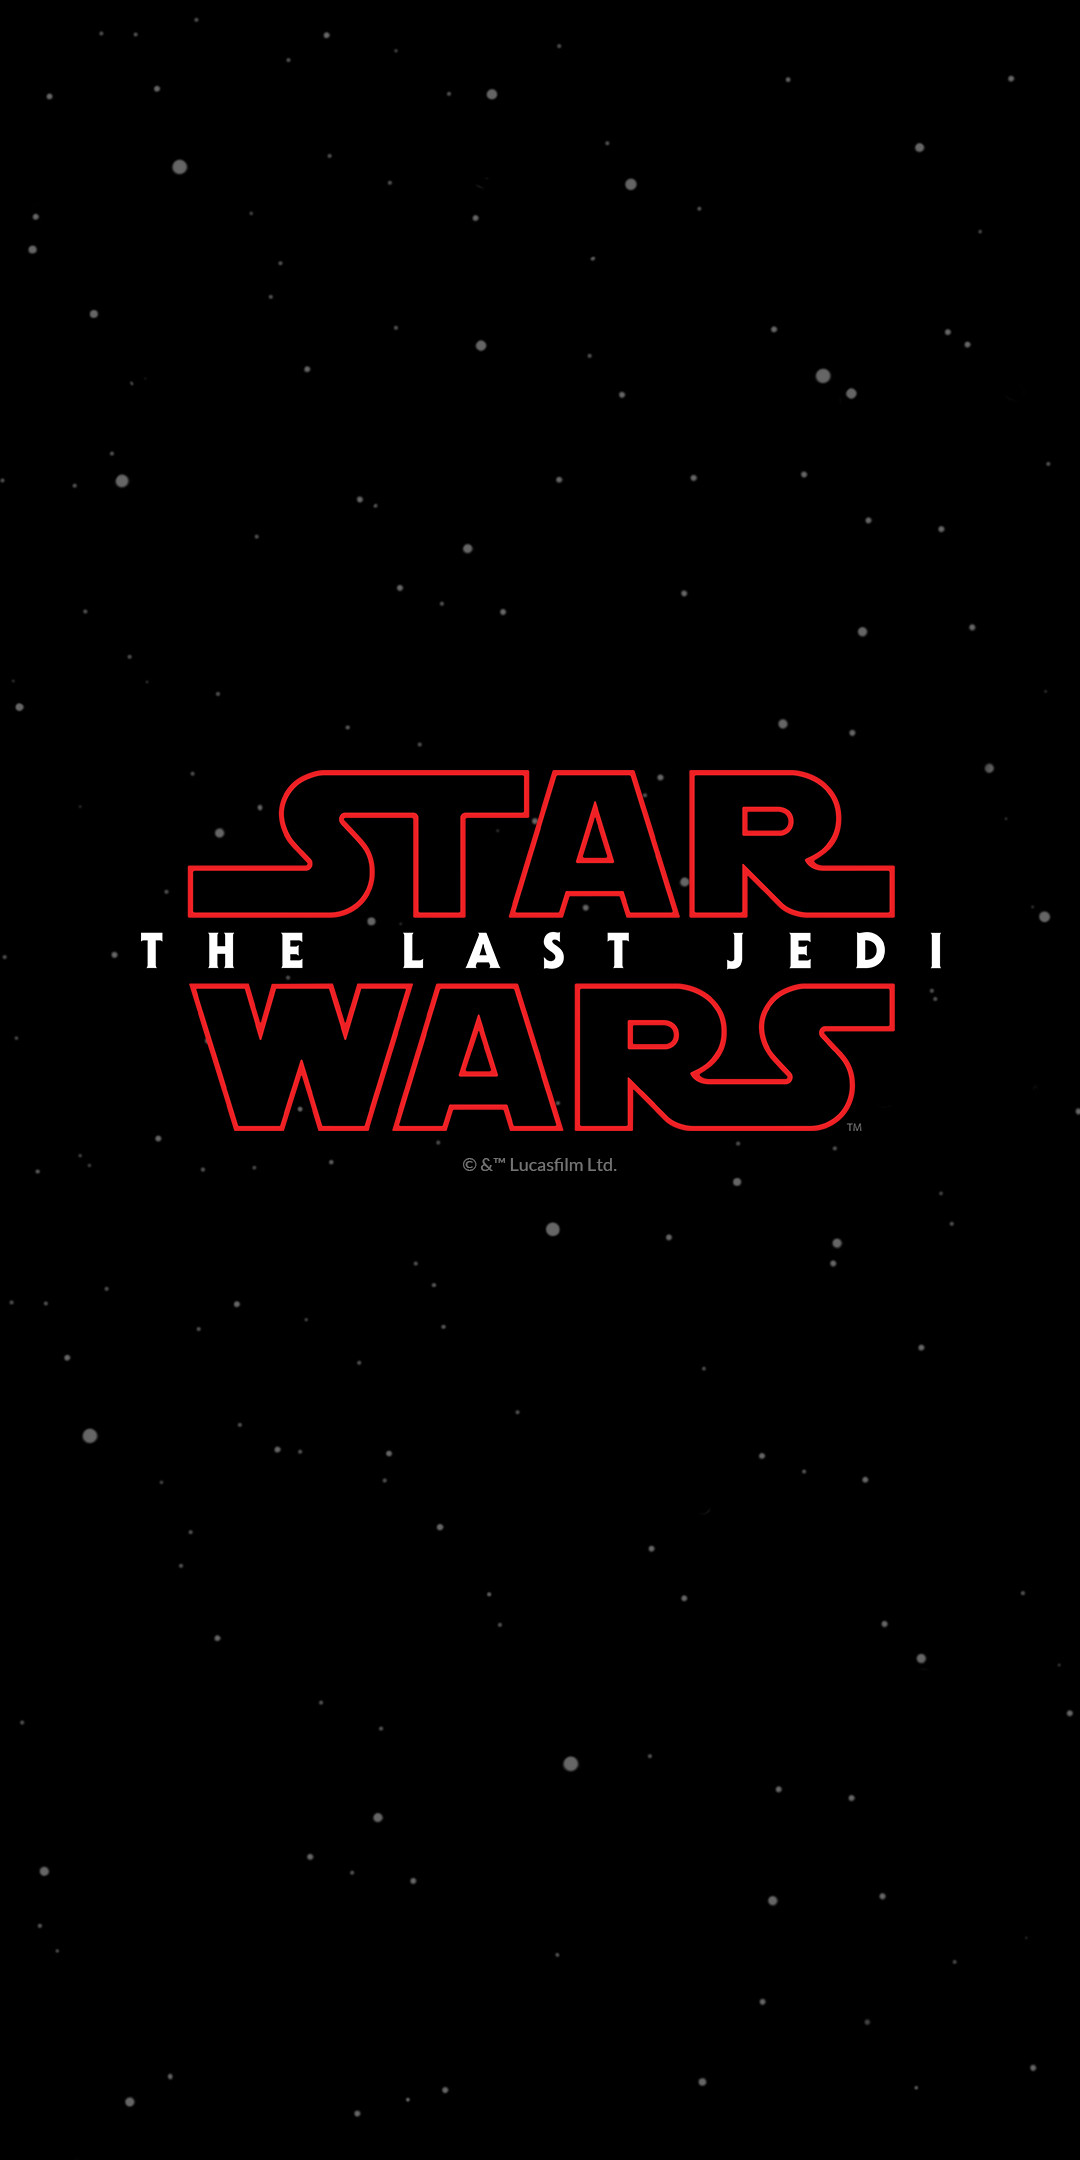 Star Wars Iphone Wallpaper Hd Posted By Sarah Simpson